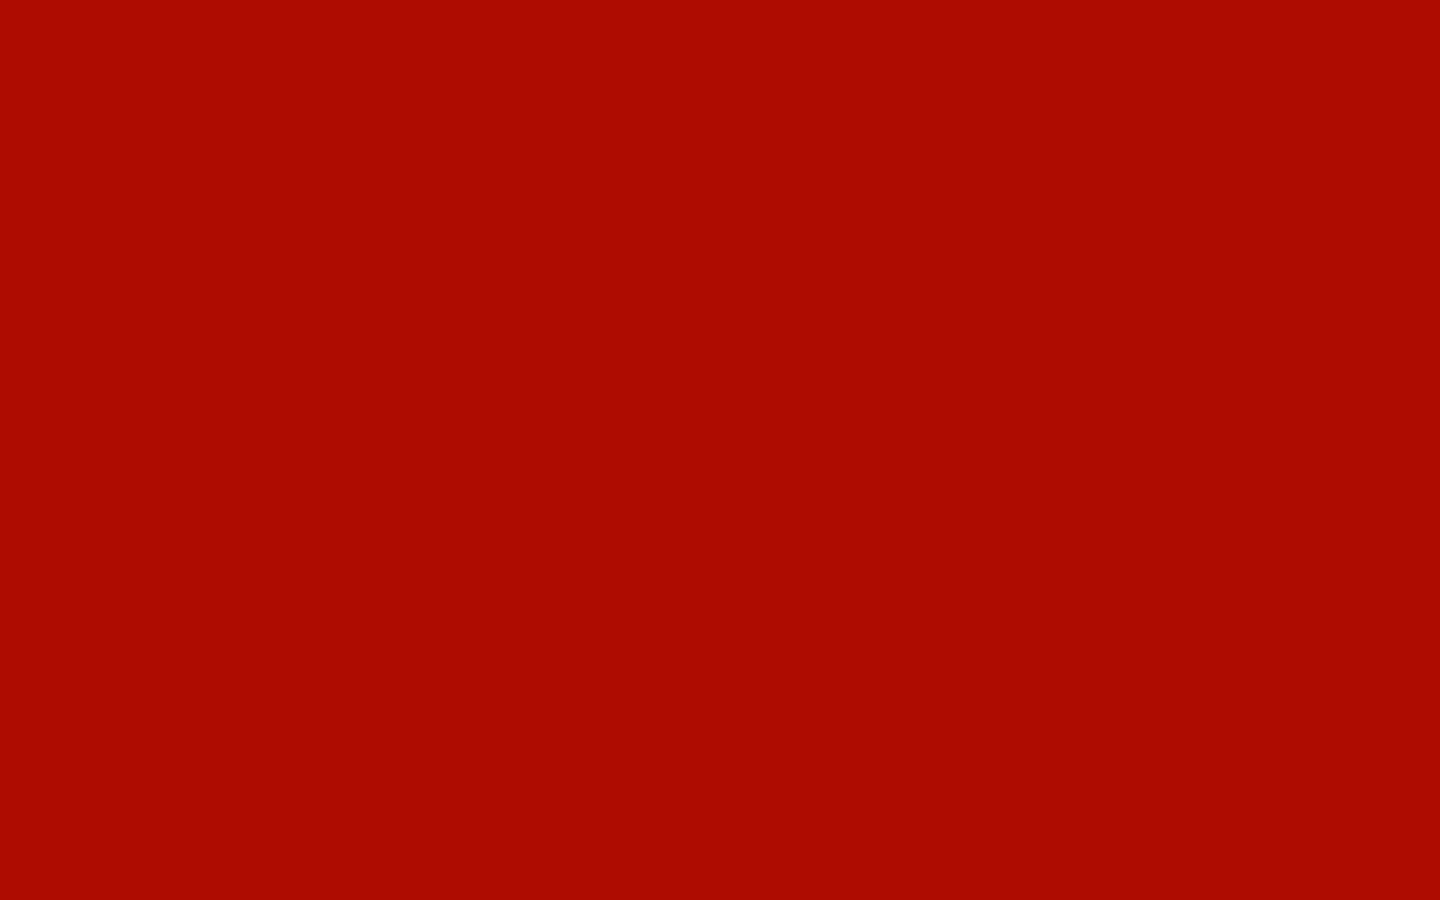 1440x900 Mordant Red 19 Solid Color Background